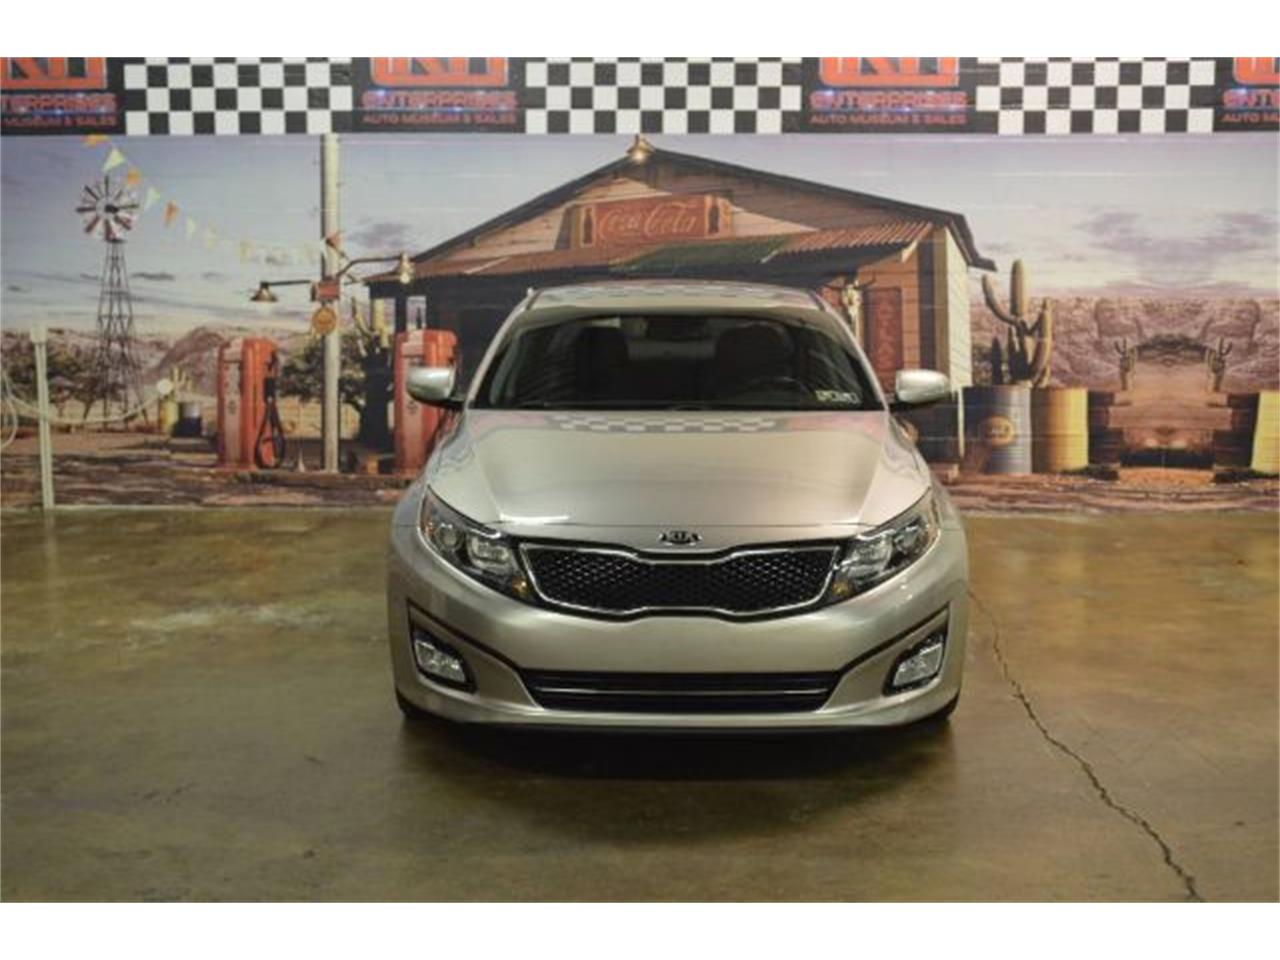 2015 Kia Optima (CC-1343864) for sale in Bristol, Pennsylvania